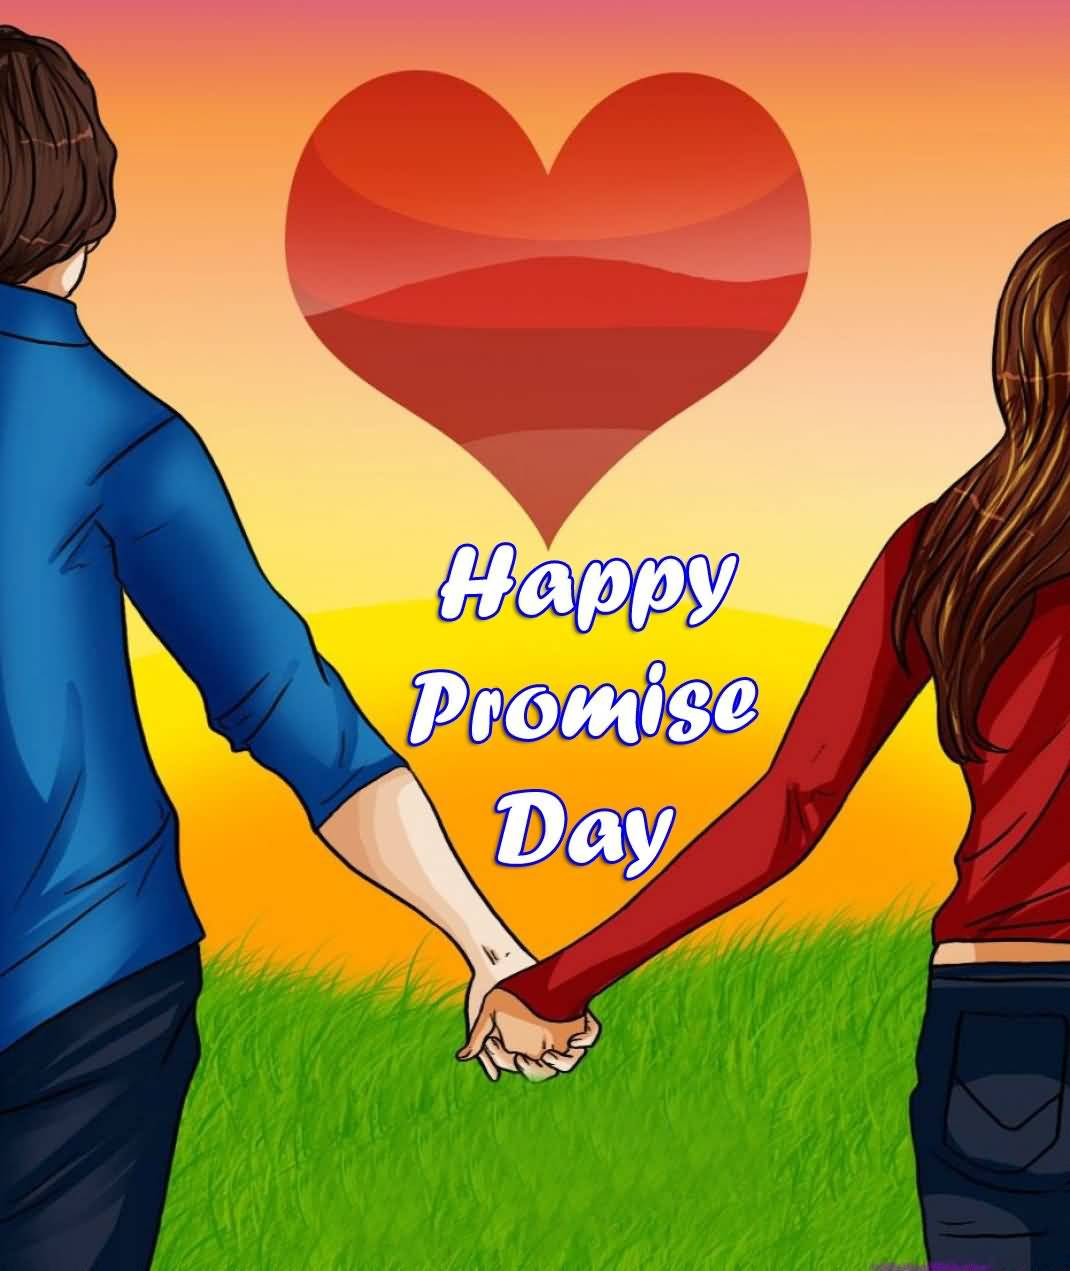 Happy Promise Day Couple Hand In Hand Picture